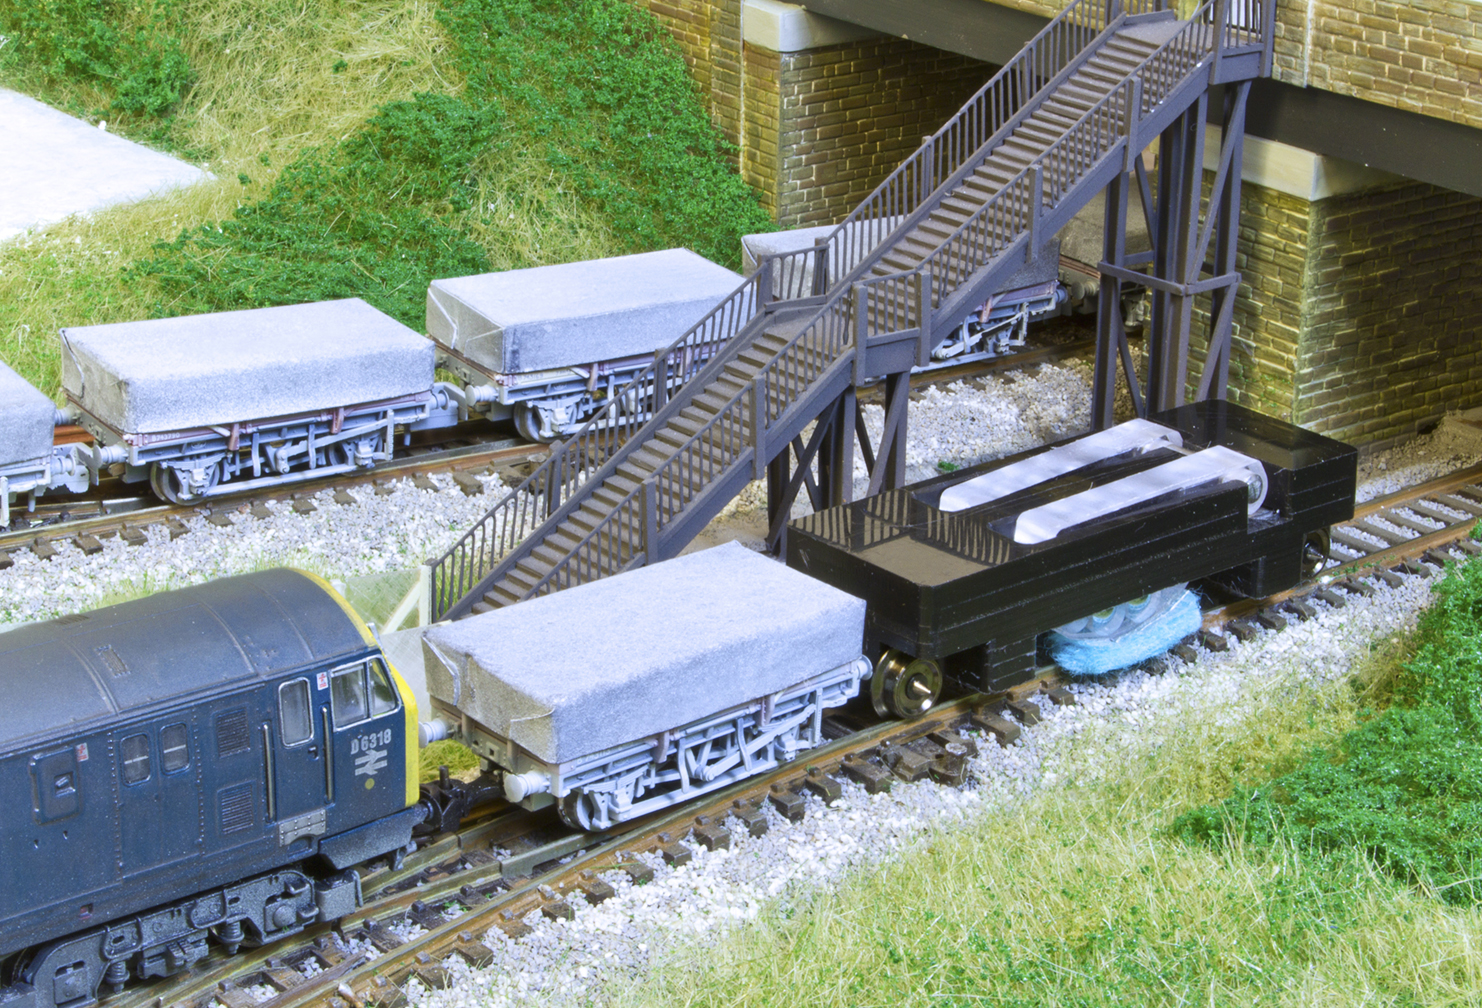 TRACK CLEANING WAGON N GAUGE